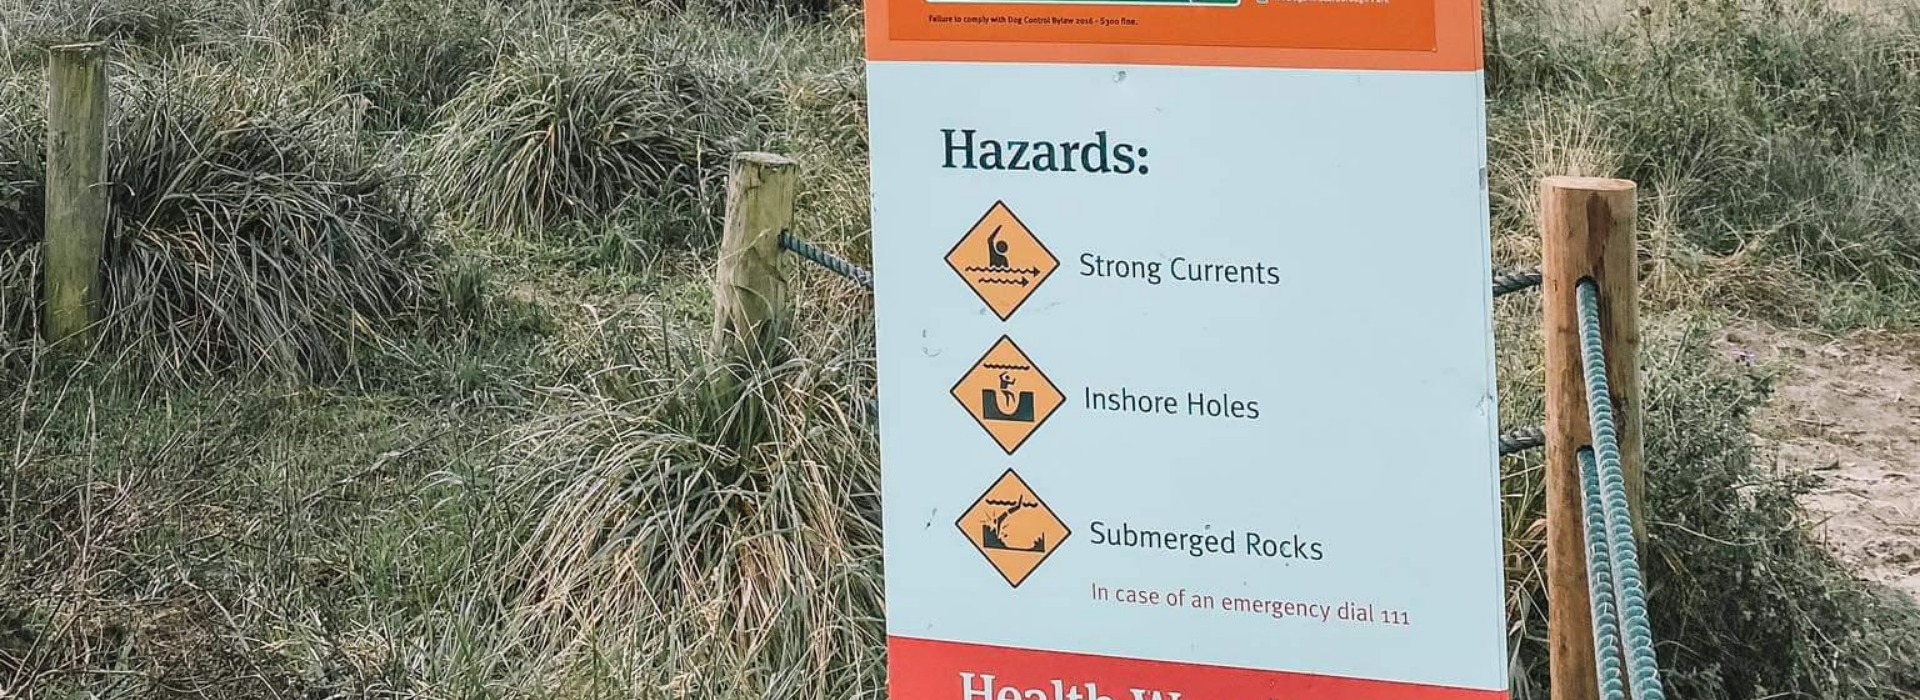 Hazards Sign Image for Beach Safety Page